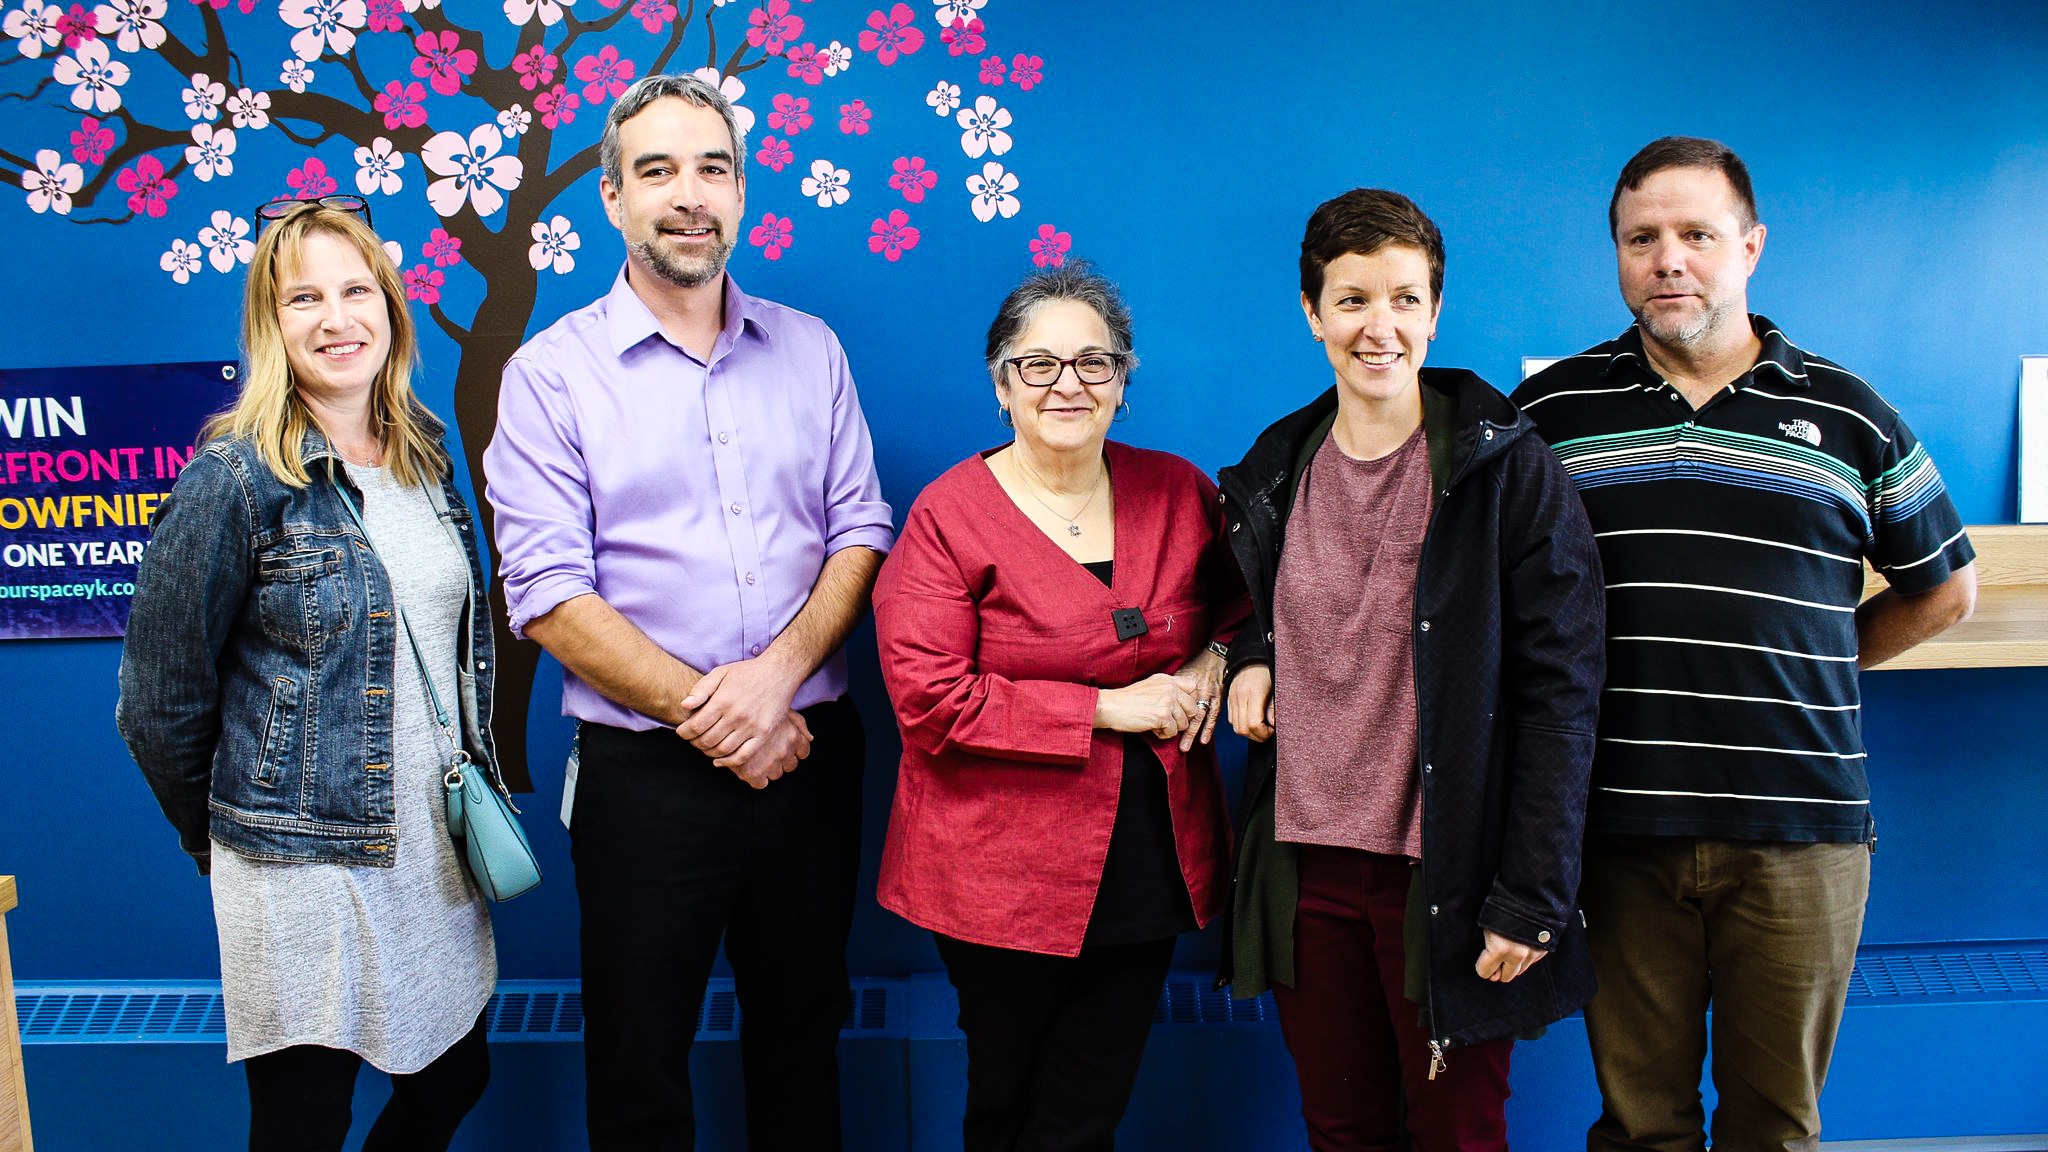 Win Your Space 2018 finalists appear with Mayor Mark Heyck in an image posted to Twitter by the City of Yellowknife